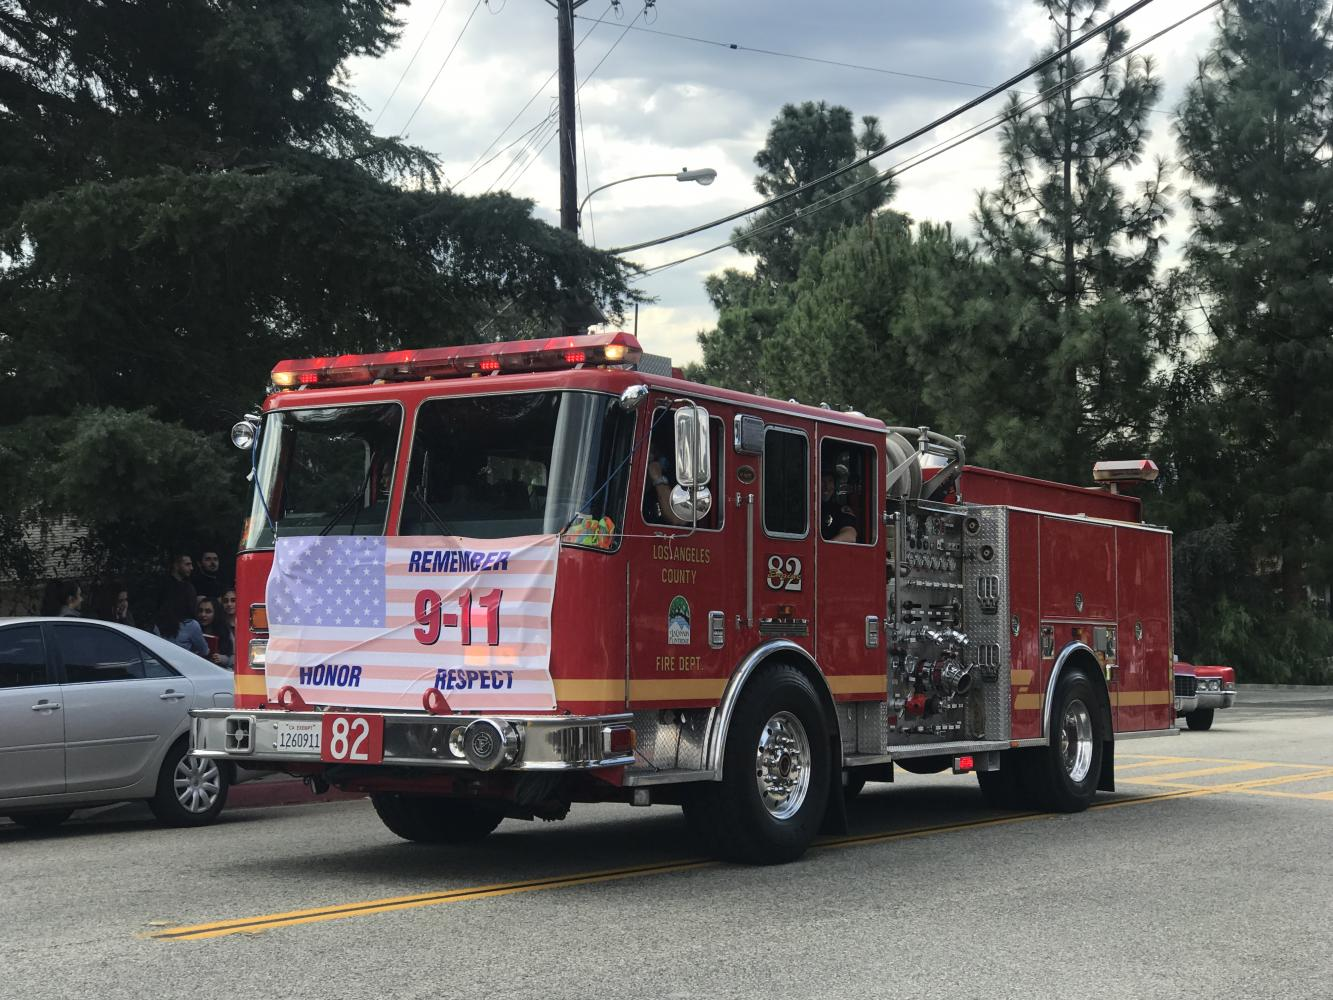 The Los Angeles Fire Department drives around La Crescenta to help remember 9/11.